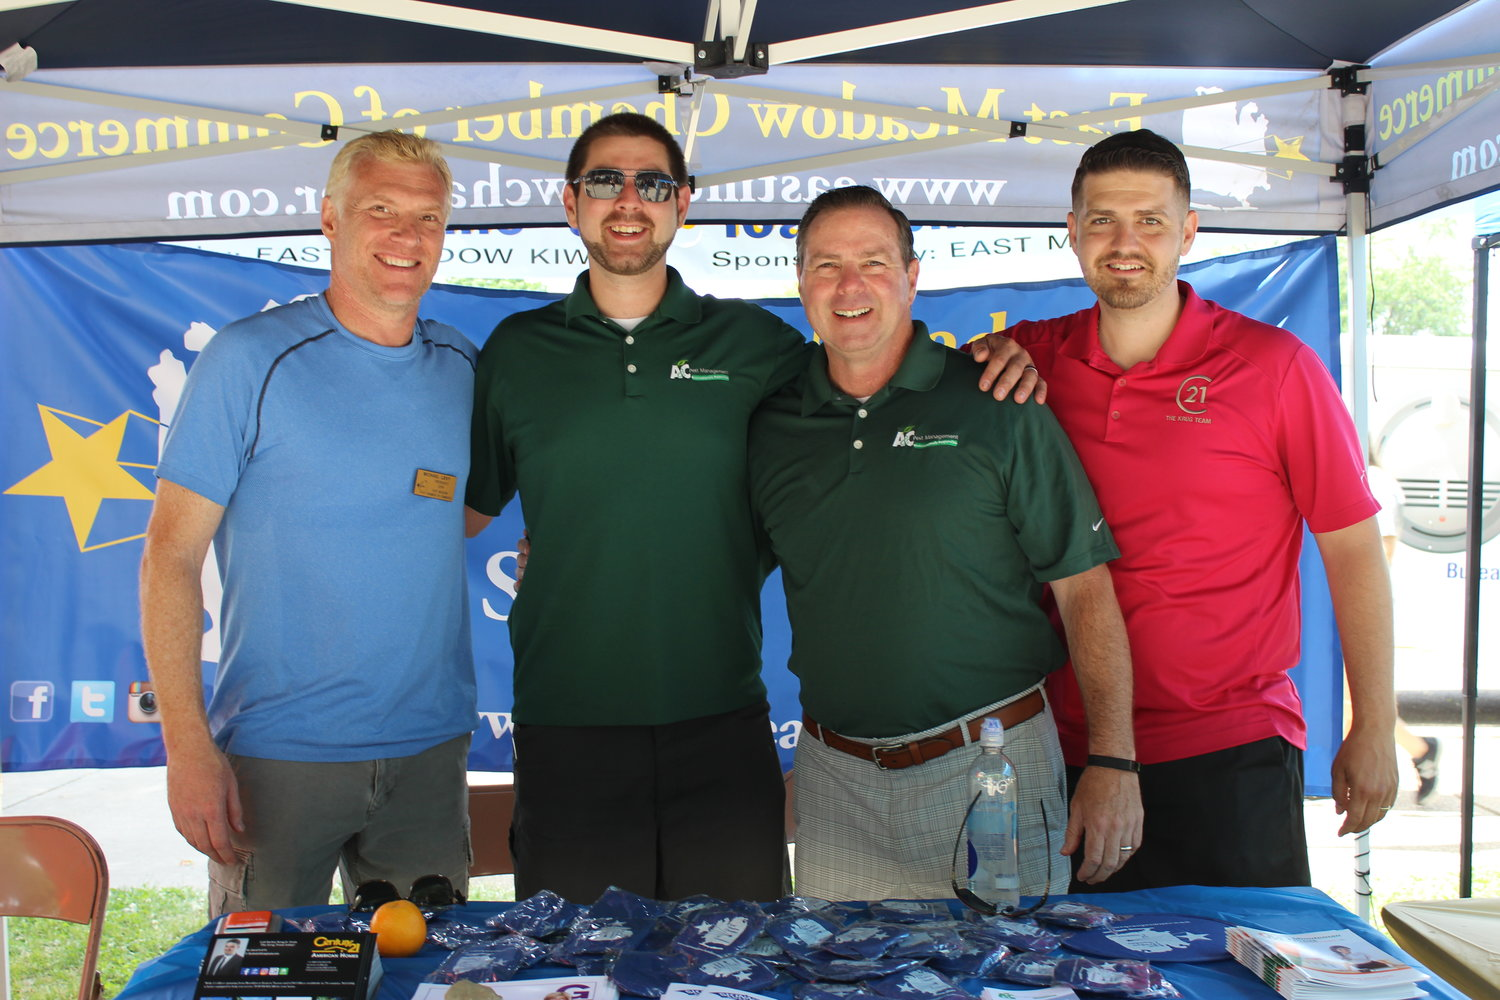 East Meadow Kiwanis and the East Meadow Chamber of Commerce hosted the event for free for the community. Above is Chamber President Michael Levy with James P. Skinner, Jim Skinner and Secretary Richie Krug Jr.